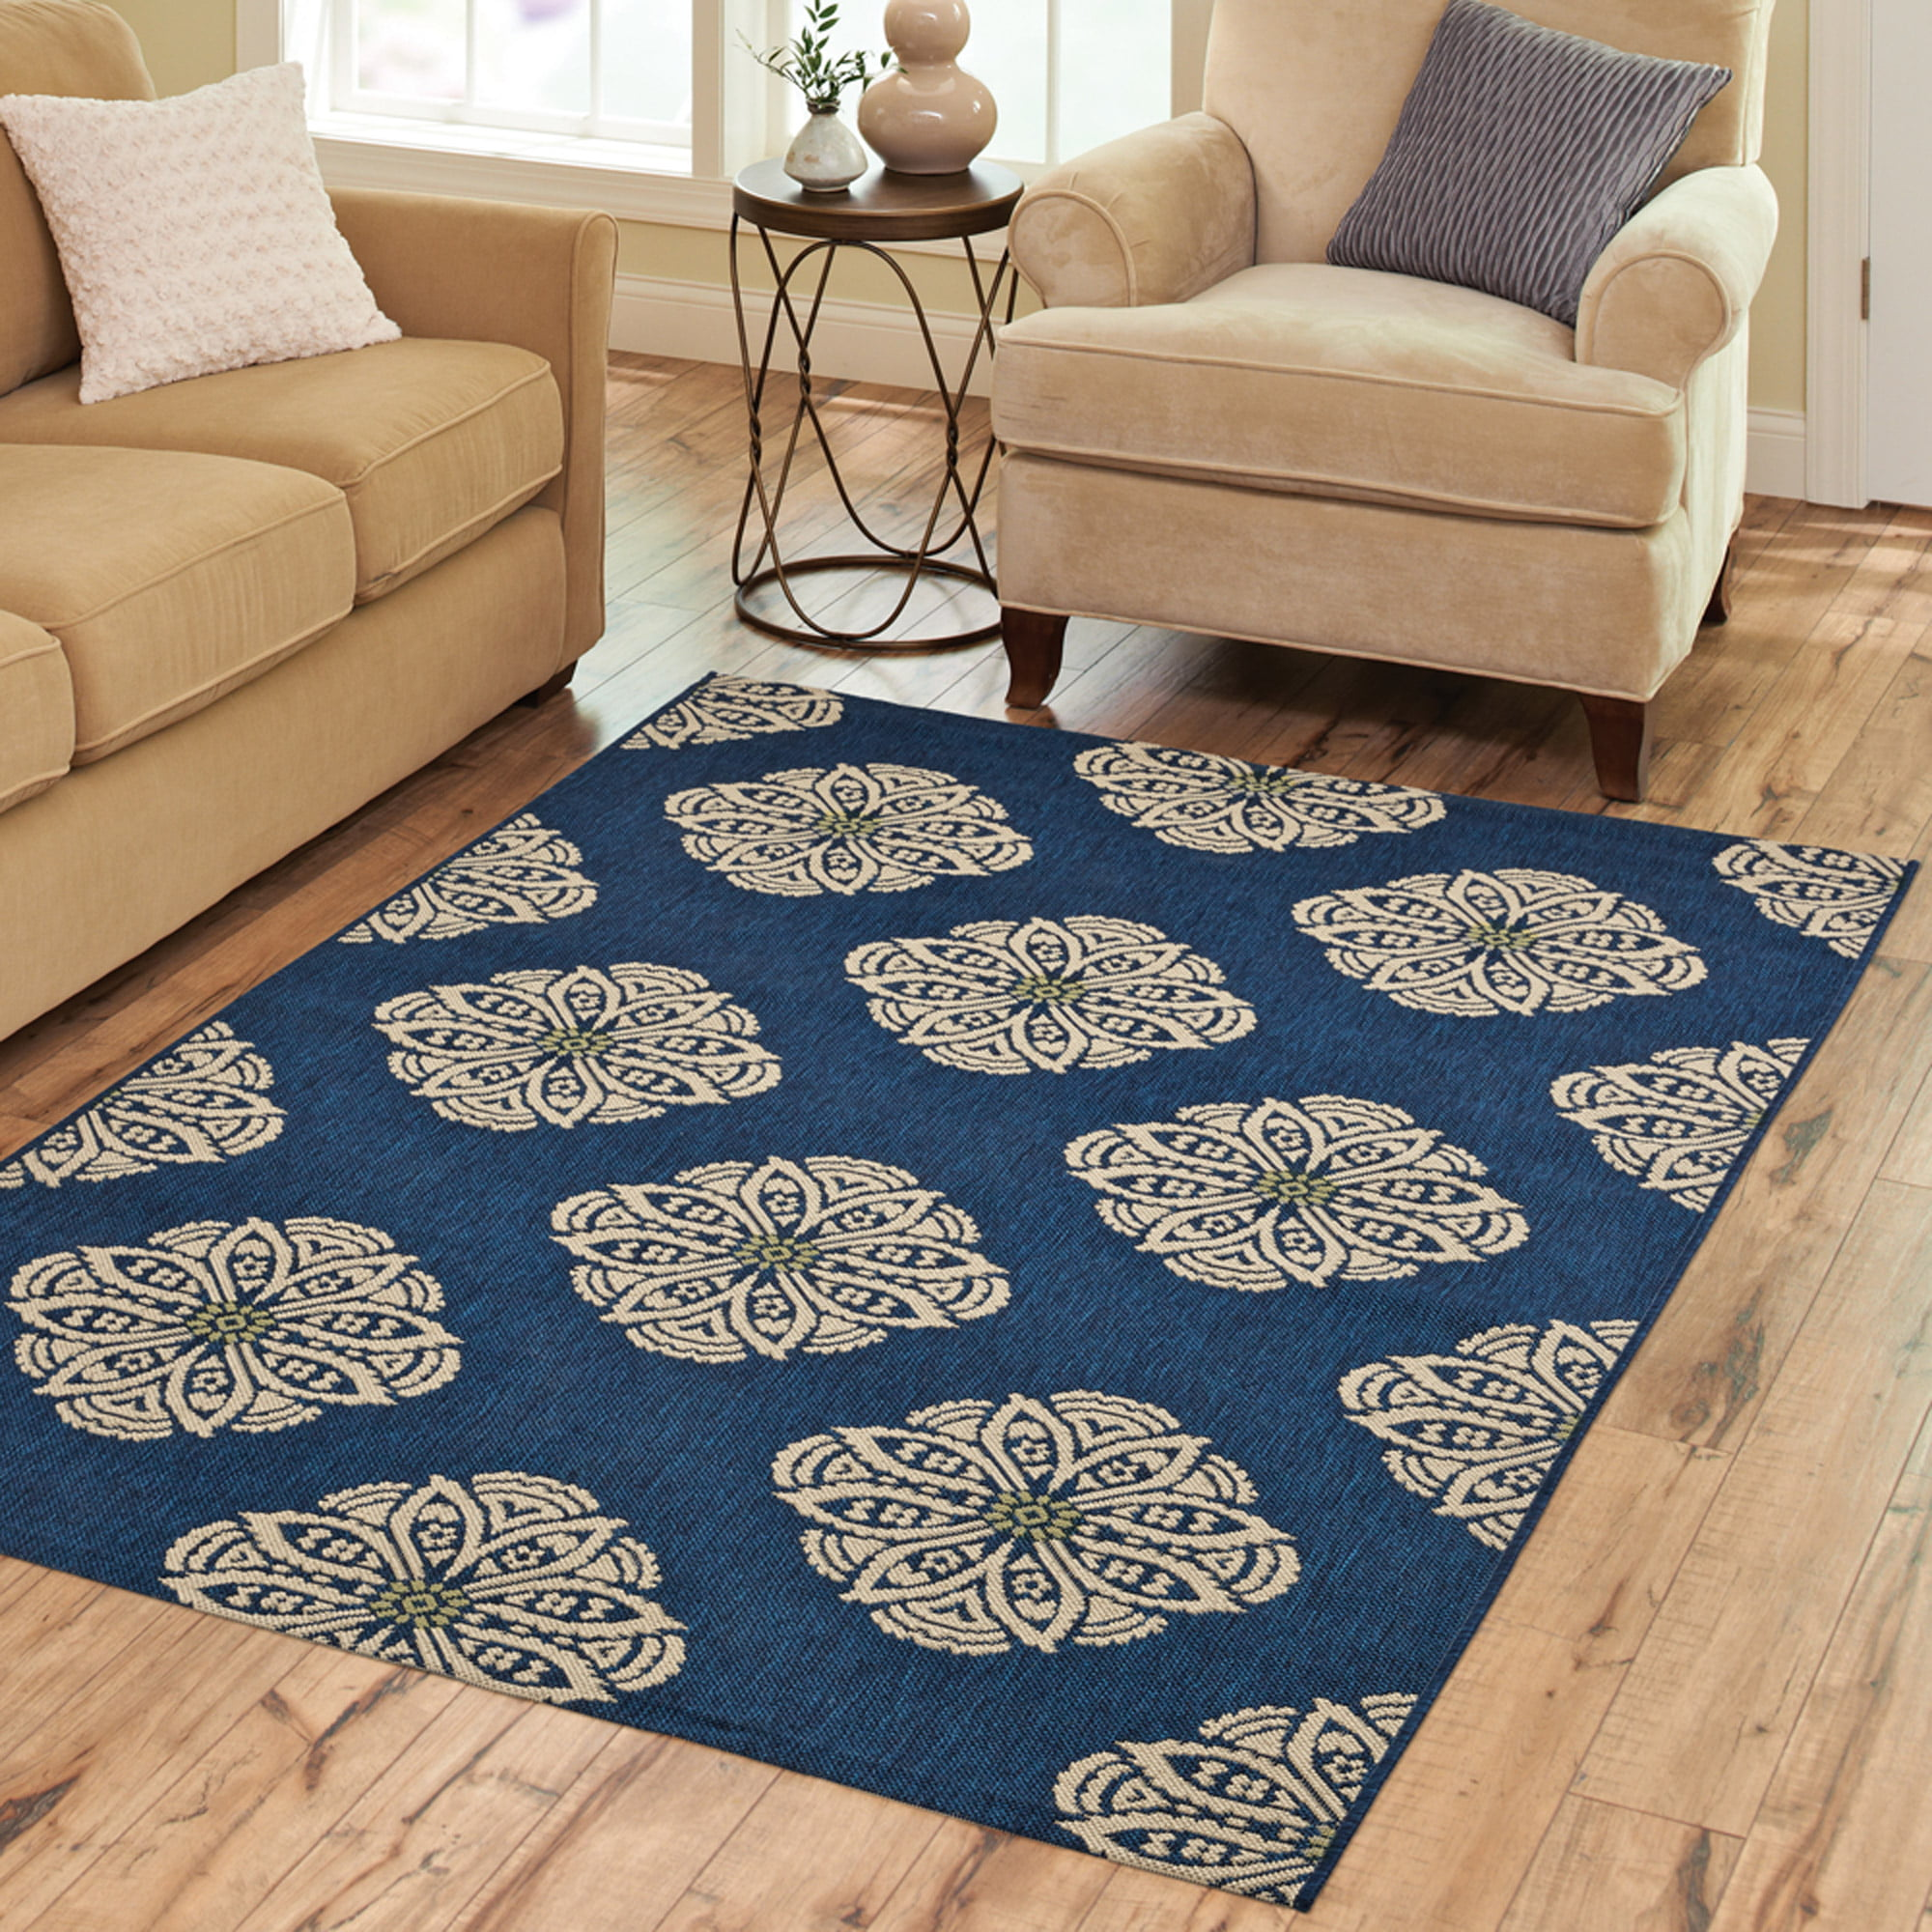 Better Homes and Gardens Medallion Indoor Outdoor Polypropylene Area Rug by Safavieh